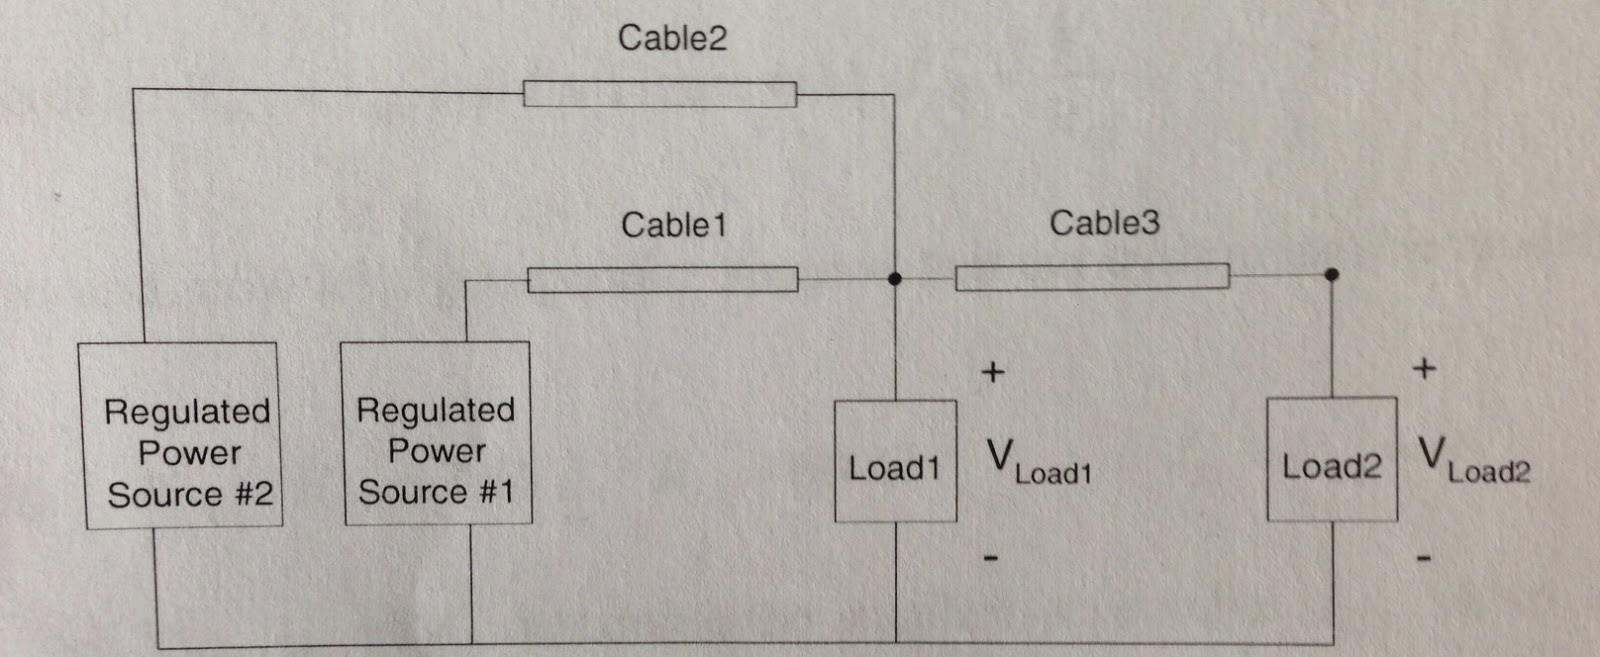 Capacitor Charging Discharging Engineering 44 Rdiaz And Circuit Current During Discharge Are Shown Below The Voltages Independent Of Currents Drawn Given A Minimum Acceptable Voltage Across Load 2 We Will Determine Smallest Equivalent